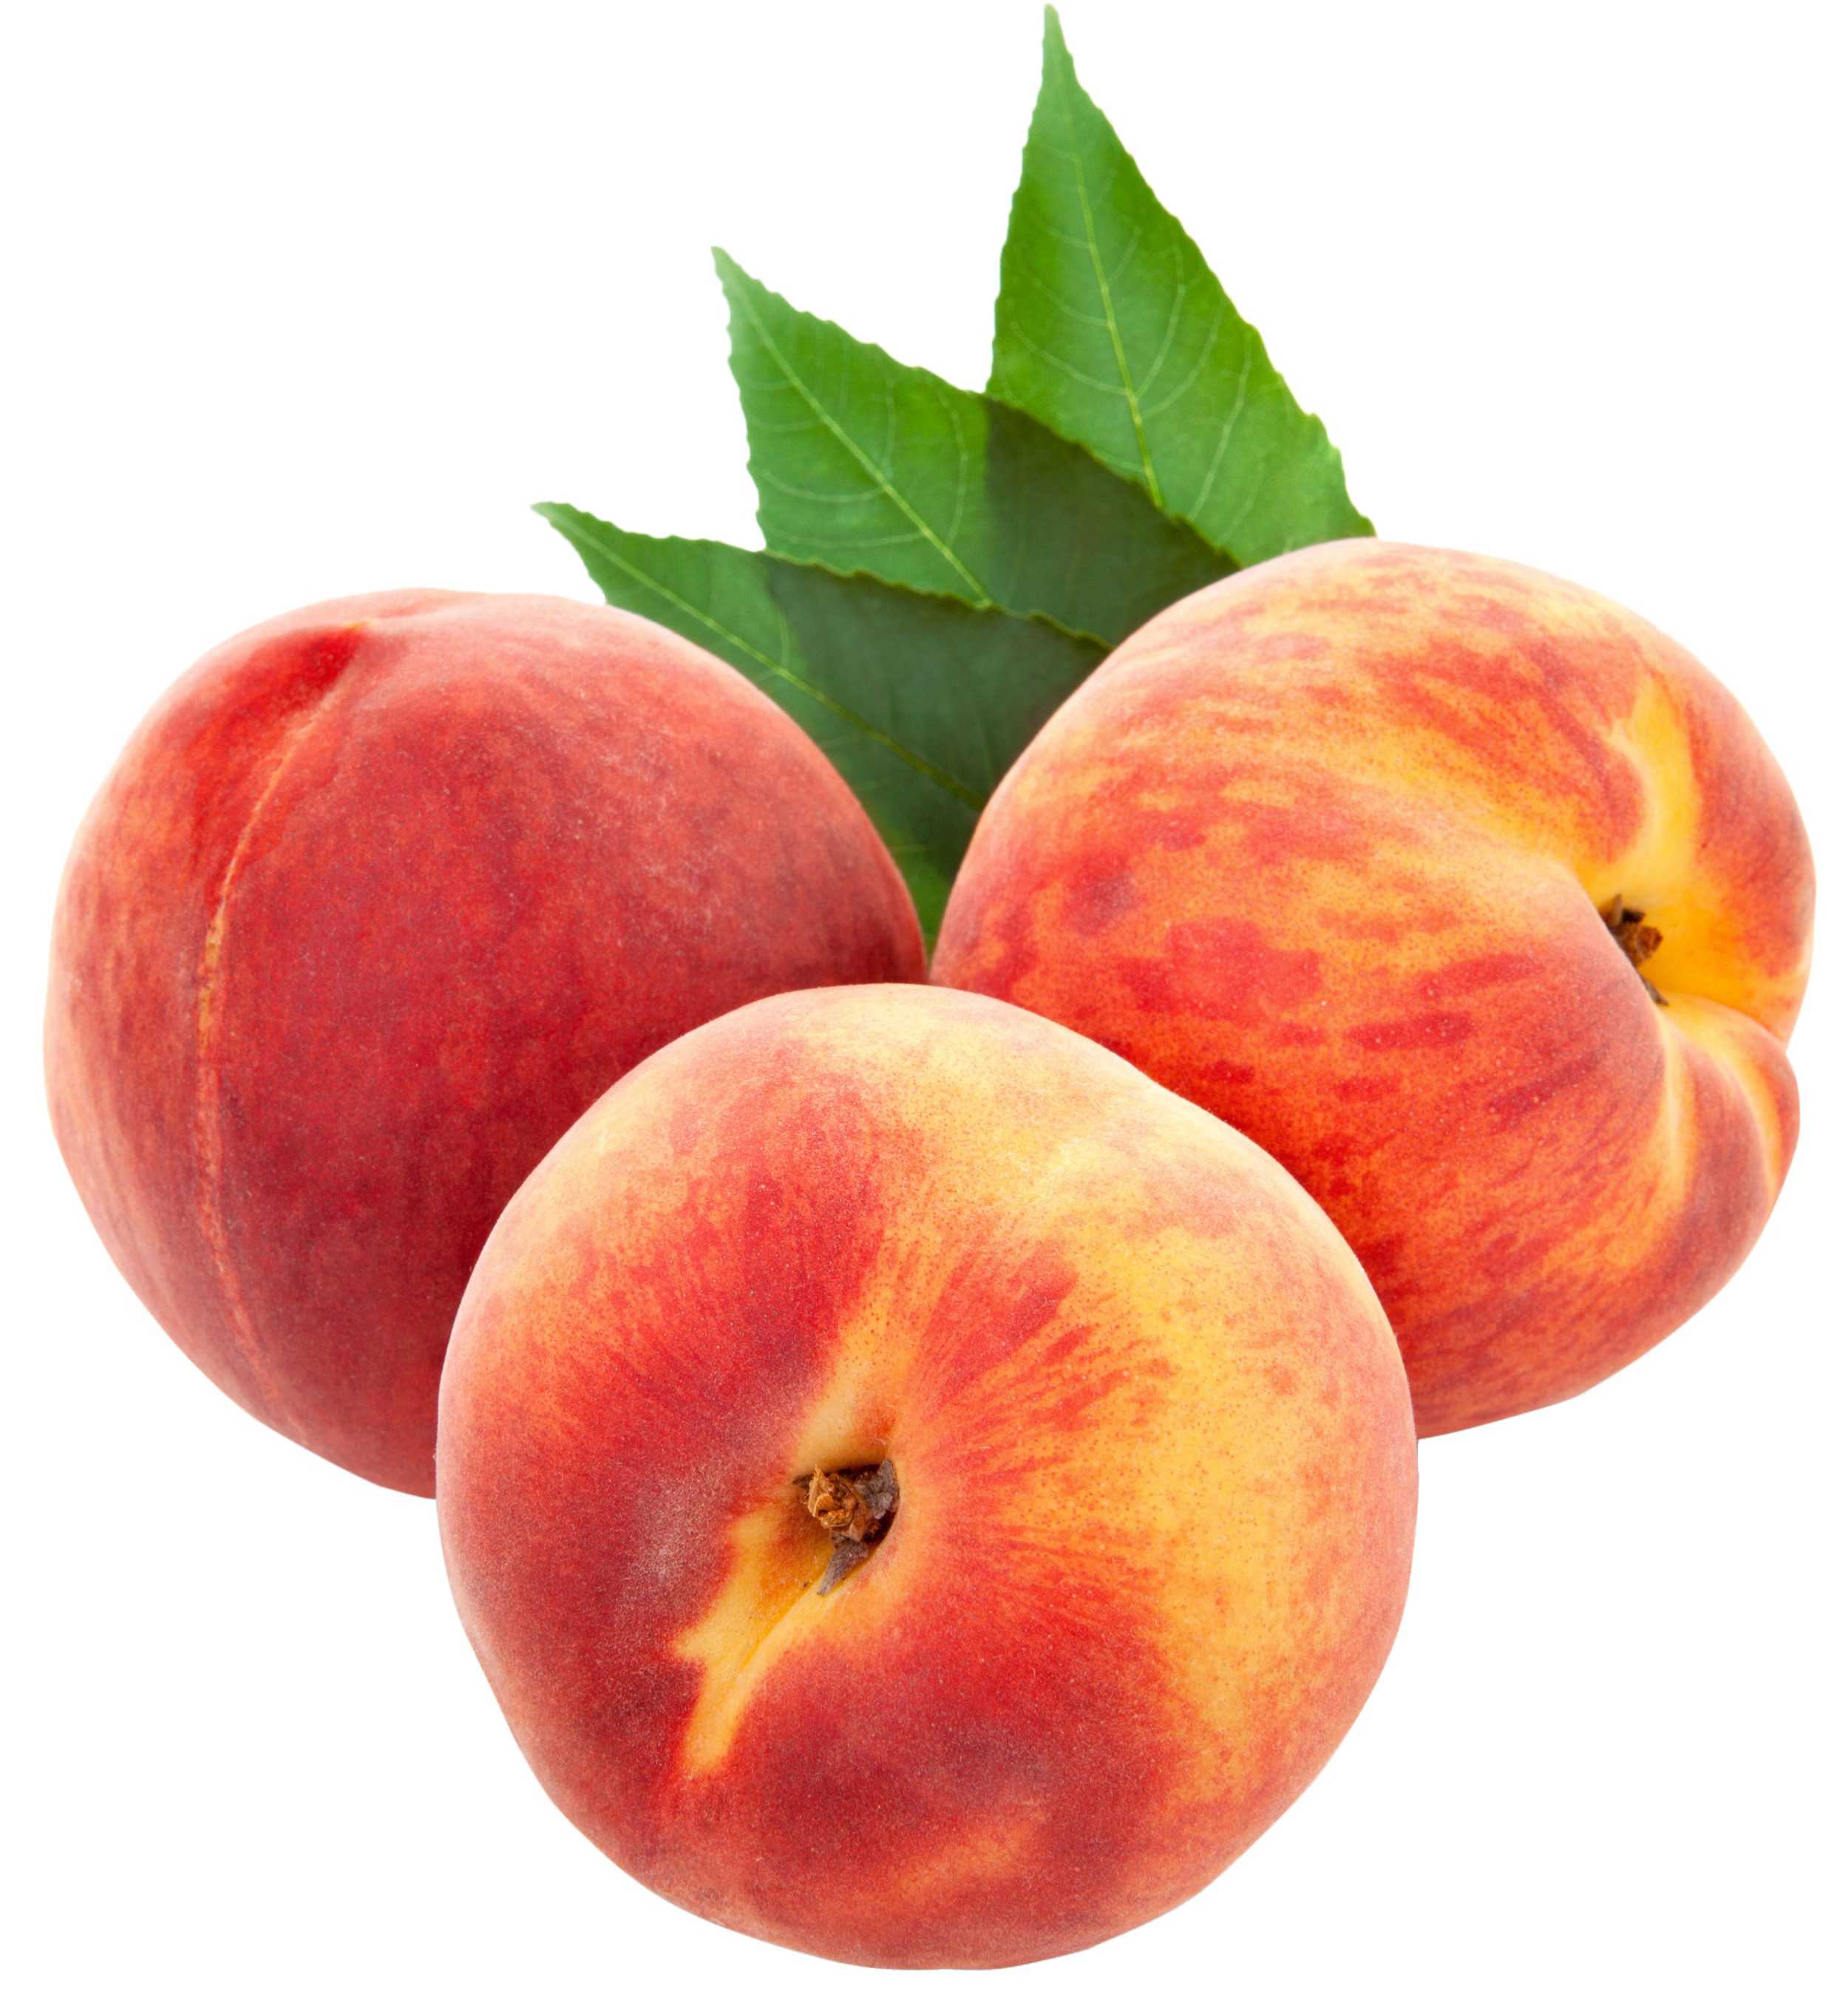 peach image png